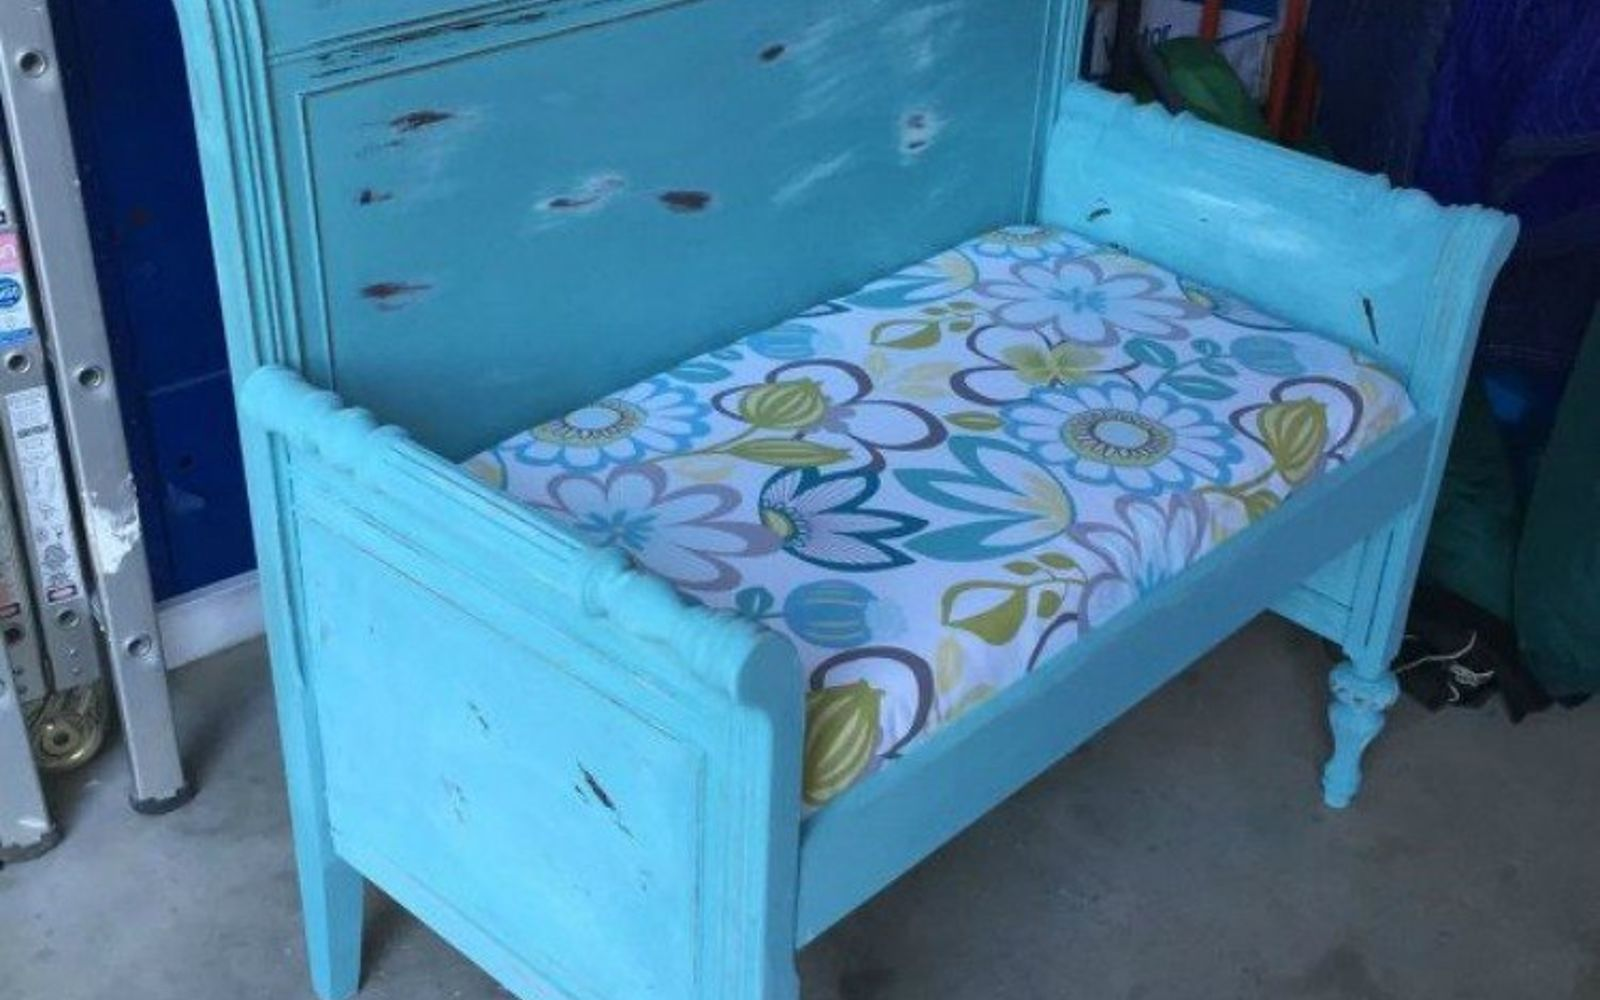 s 10 surprising ways to turn old furniture into extra seating, painted furniture, After A cute blue side seat